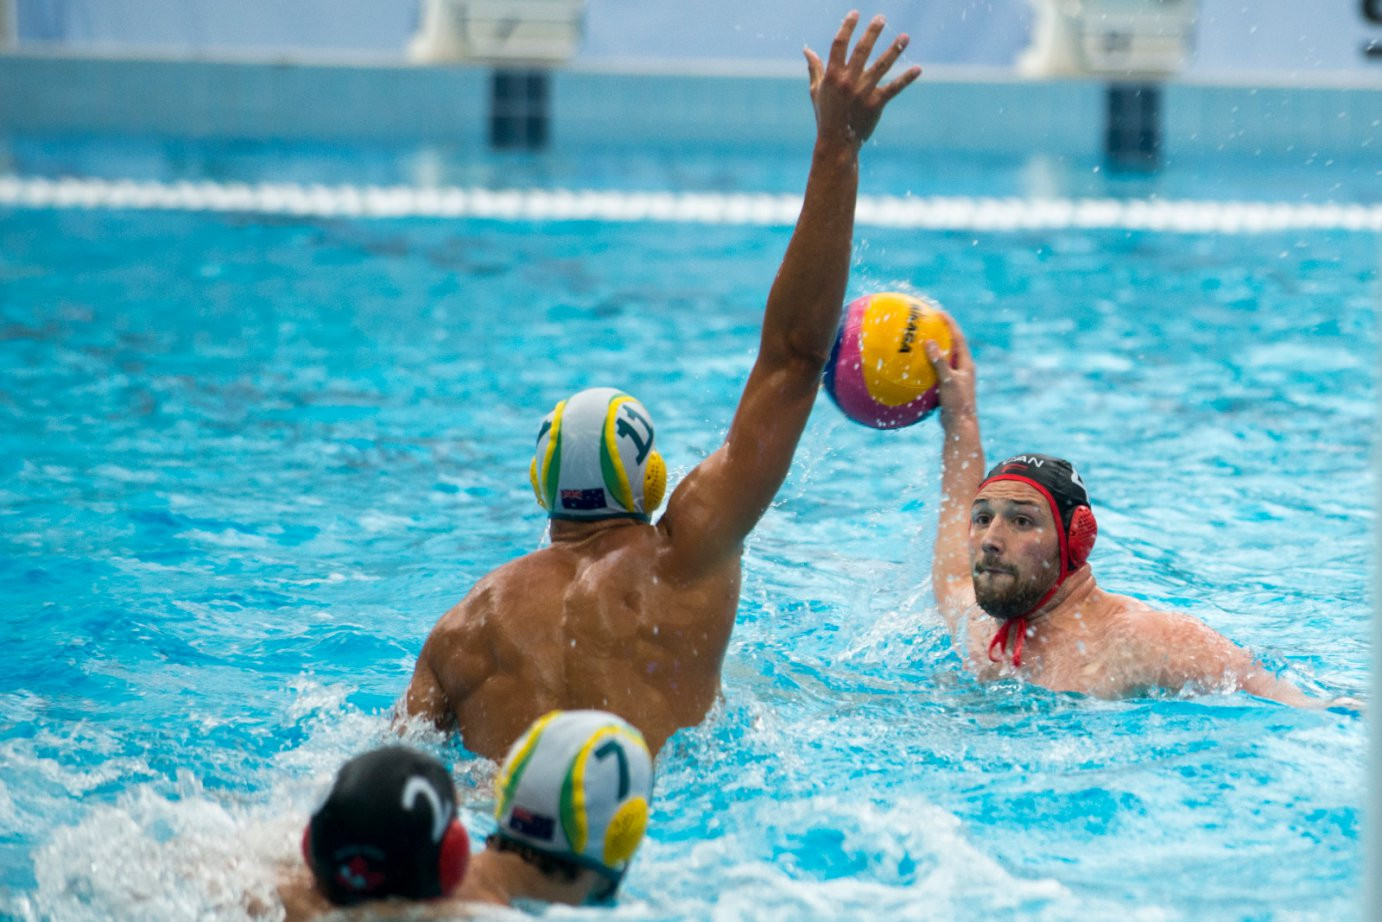 Australia's men have put themselves in a strong position in the Water Polo World League Intercontinental Cup ©FINA